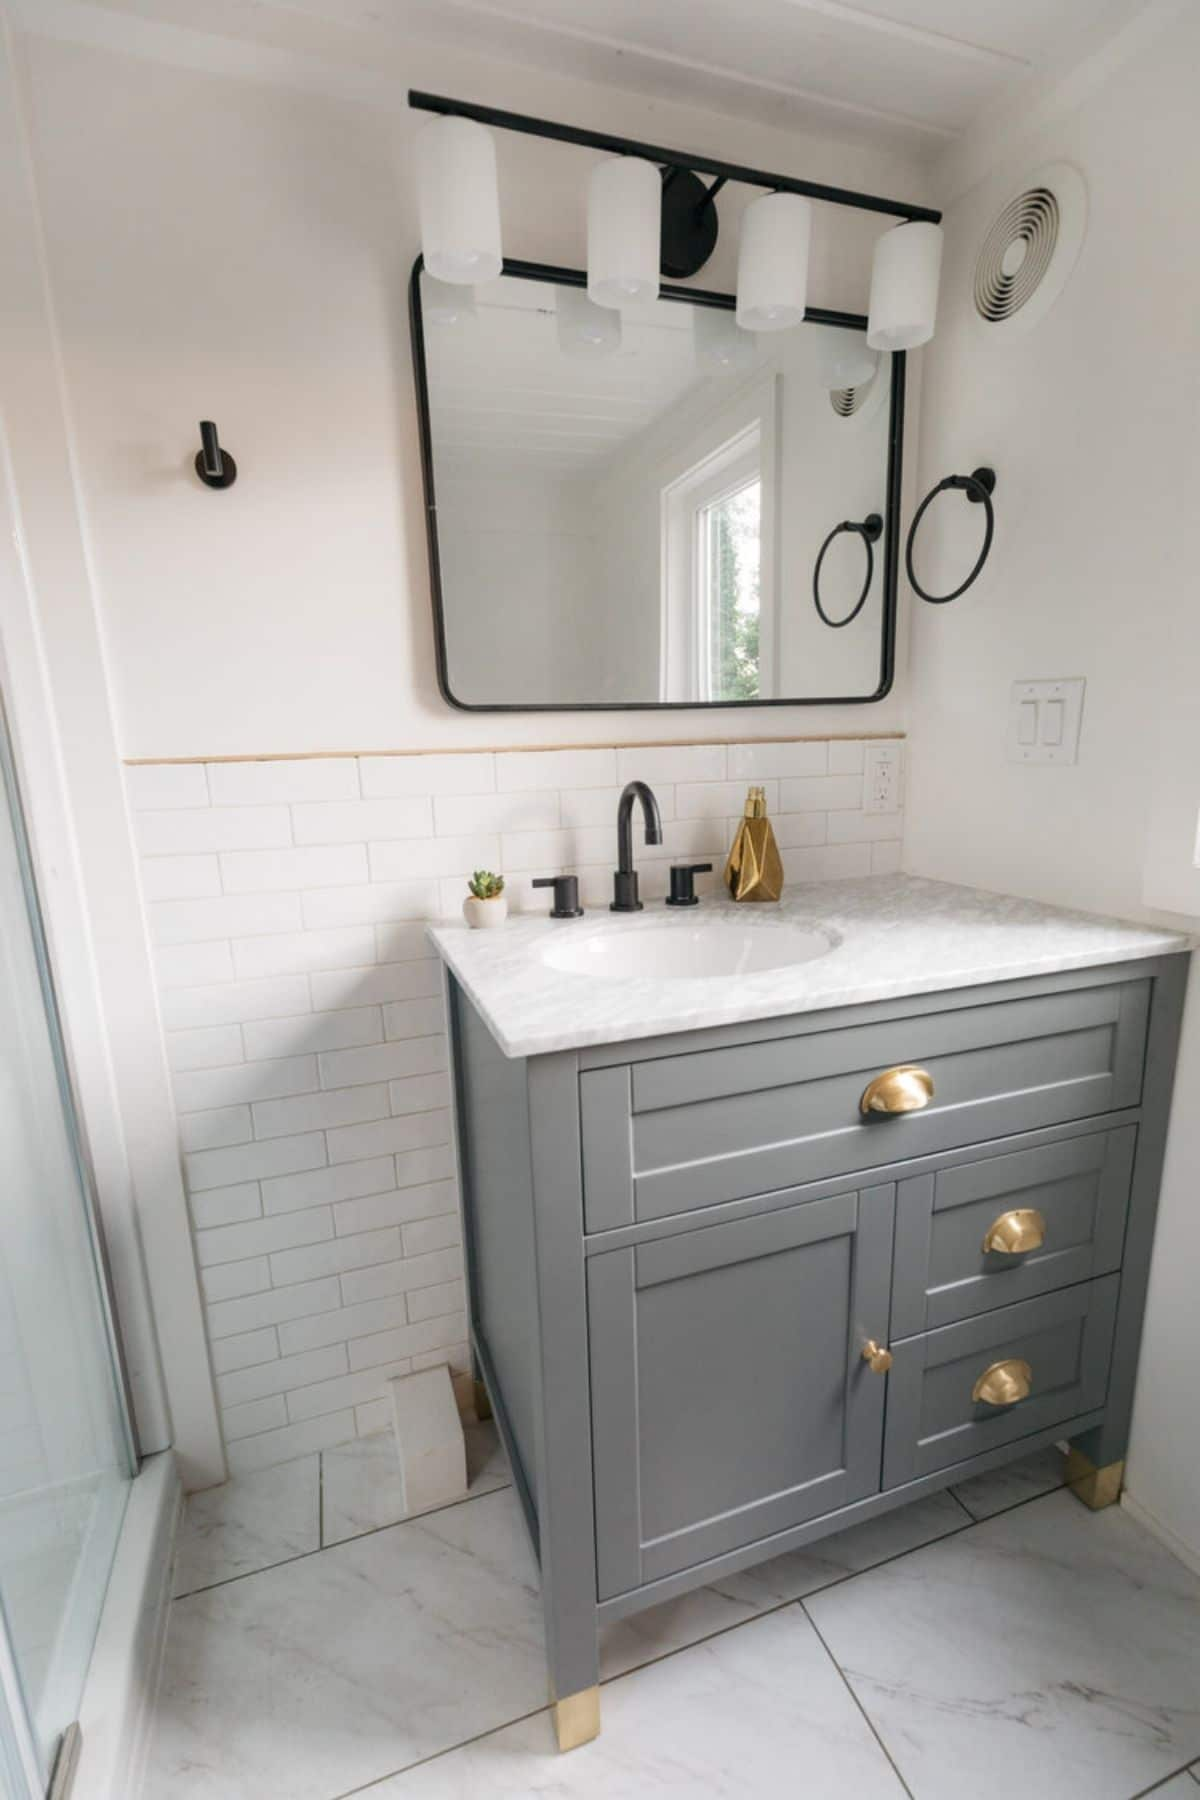 Gray cabinet under white sink against white wall